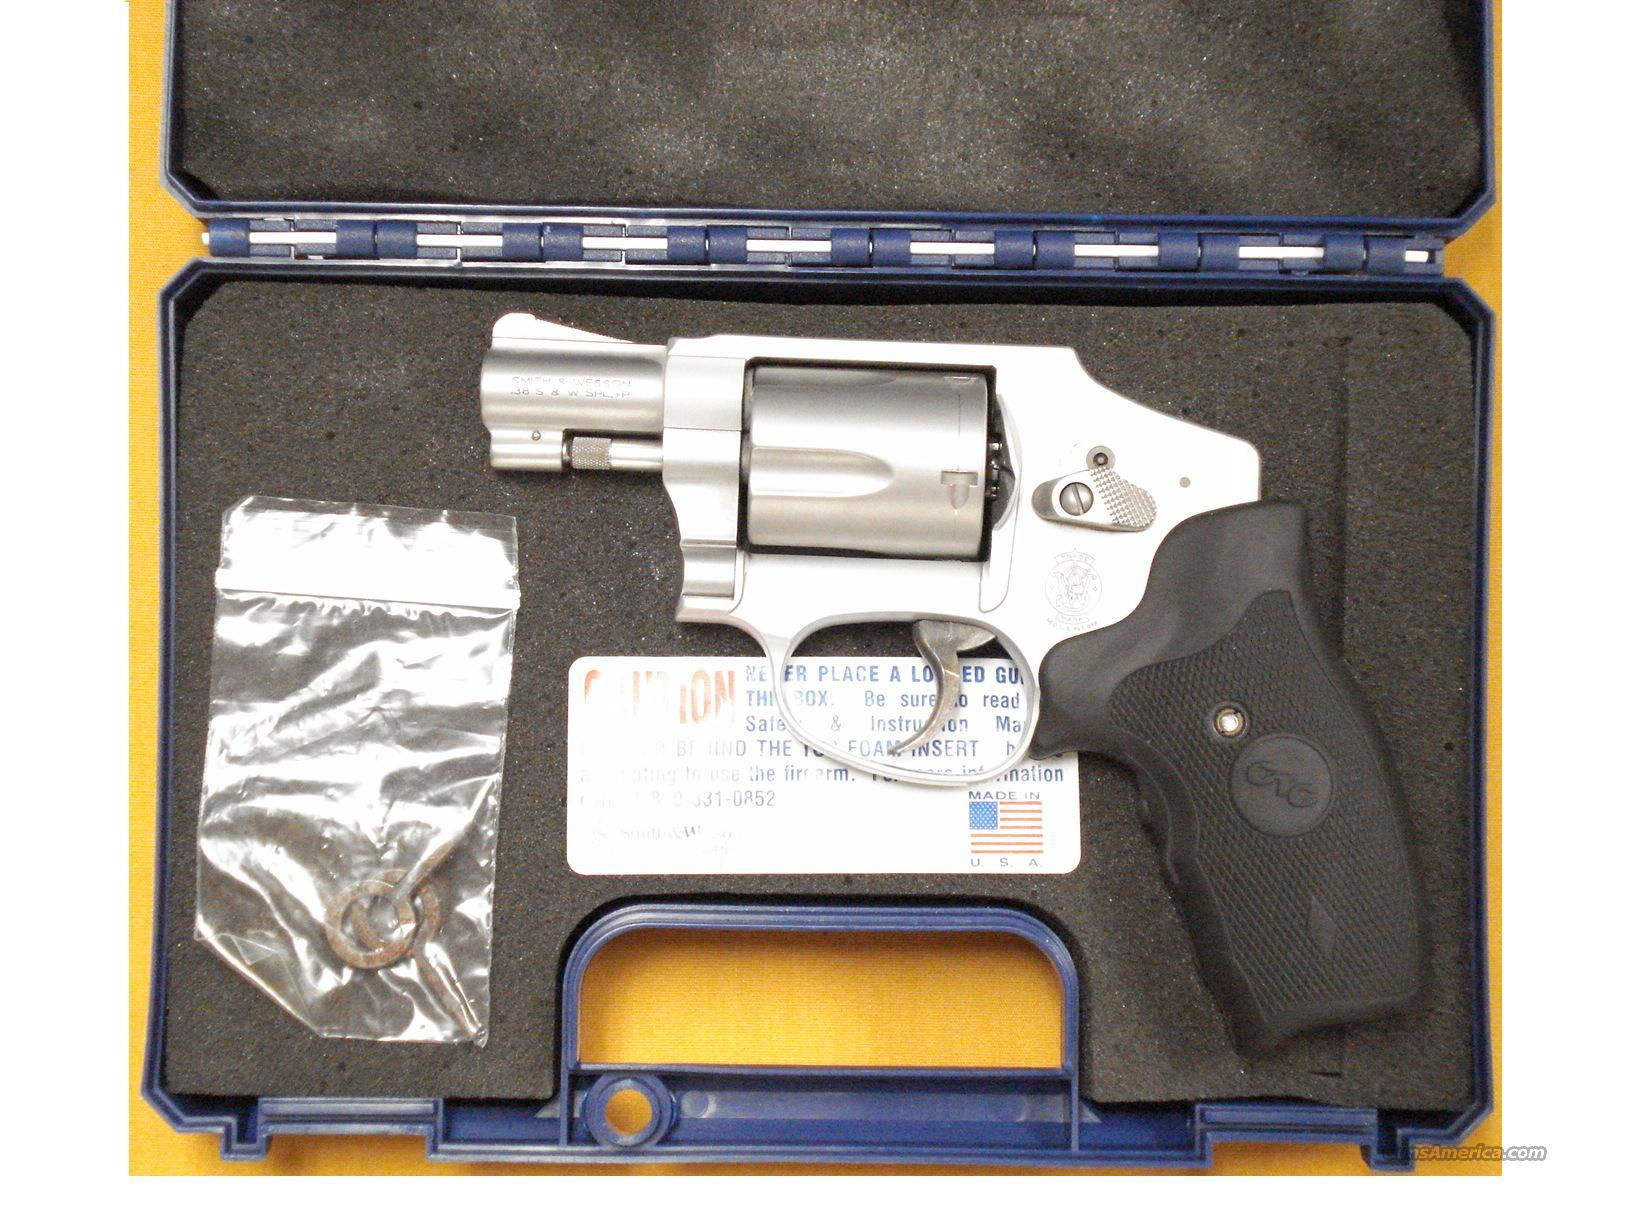 "S&W 642-2 AIRWEIGHT .38 SPL. 2""BBL LASER GRIPS  Guns > Pistols > Smith & Wesson Revolvers > Full Frame Revolver"